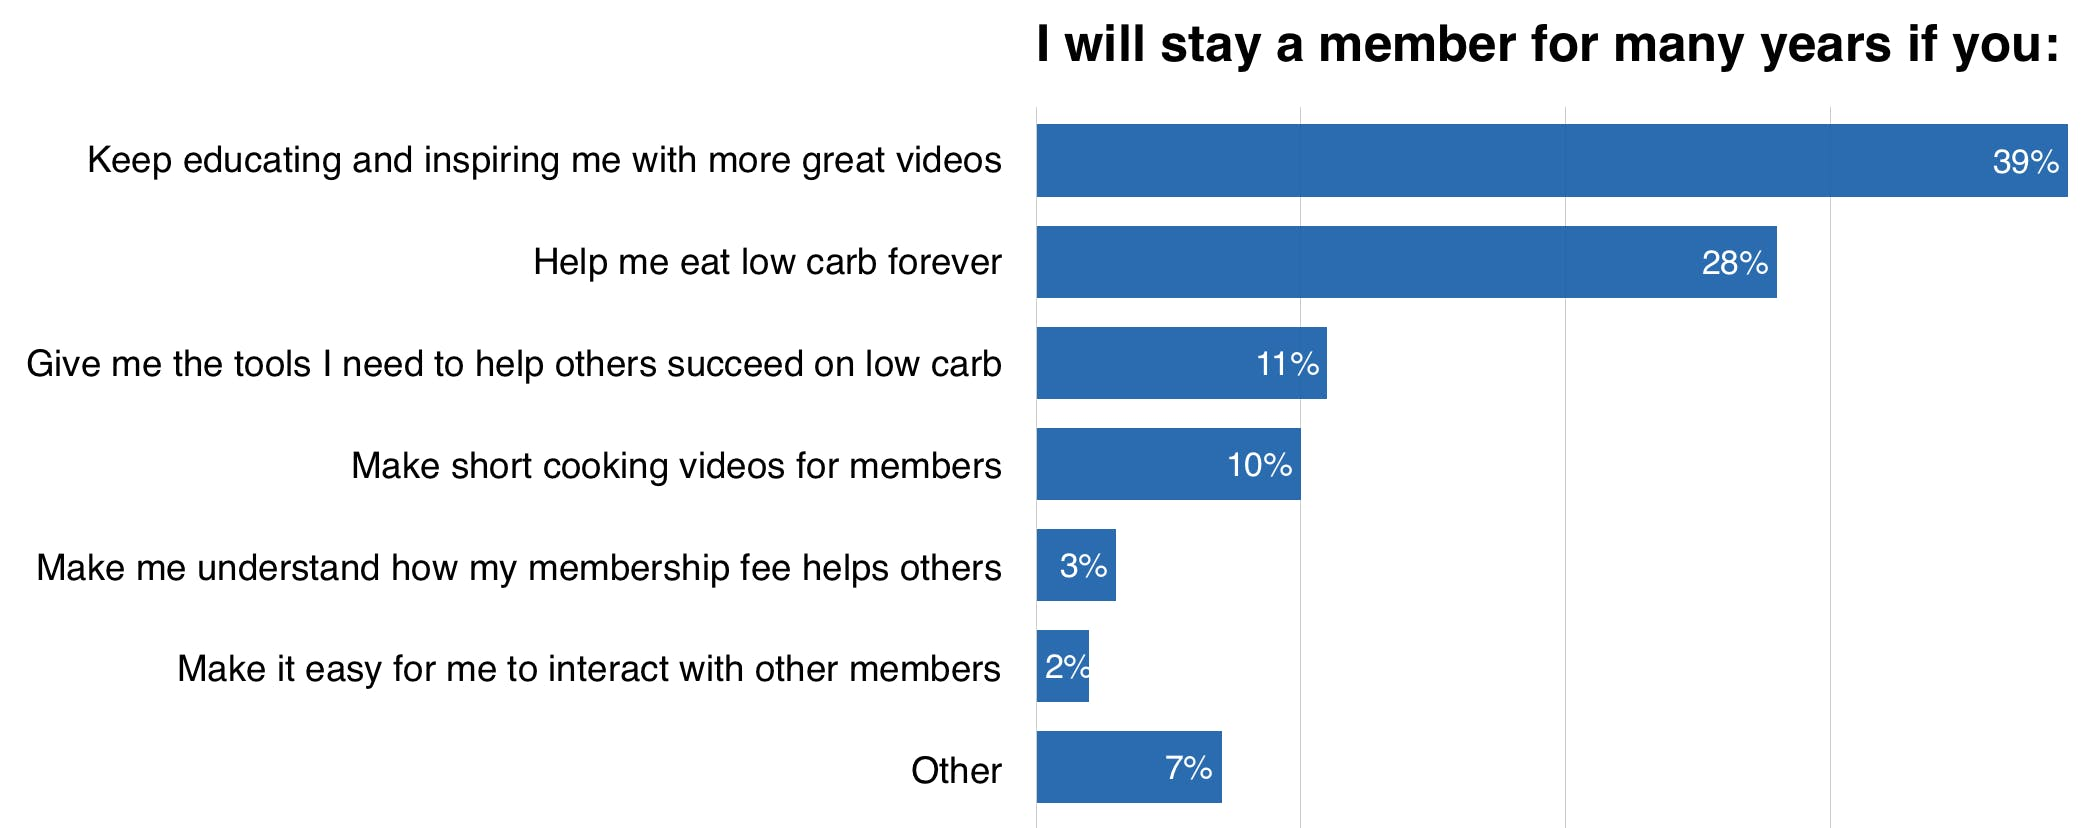 i-will-stay-a-member-for-years-if